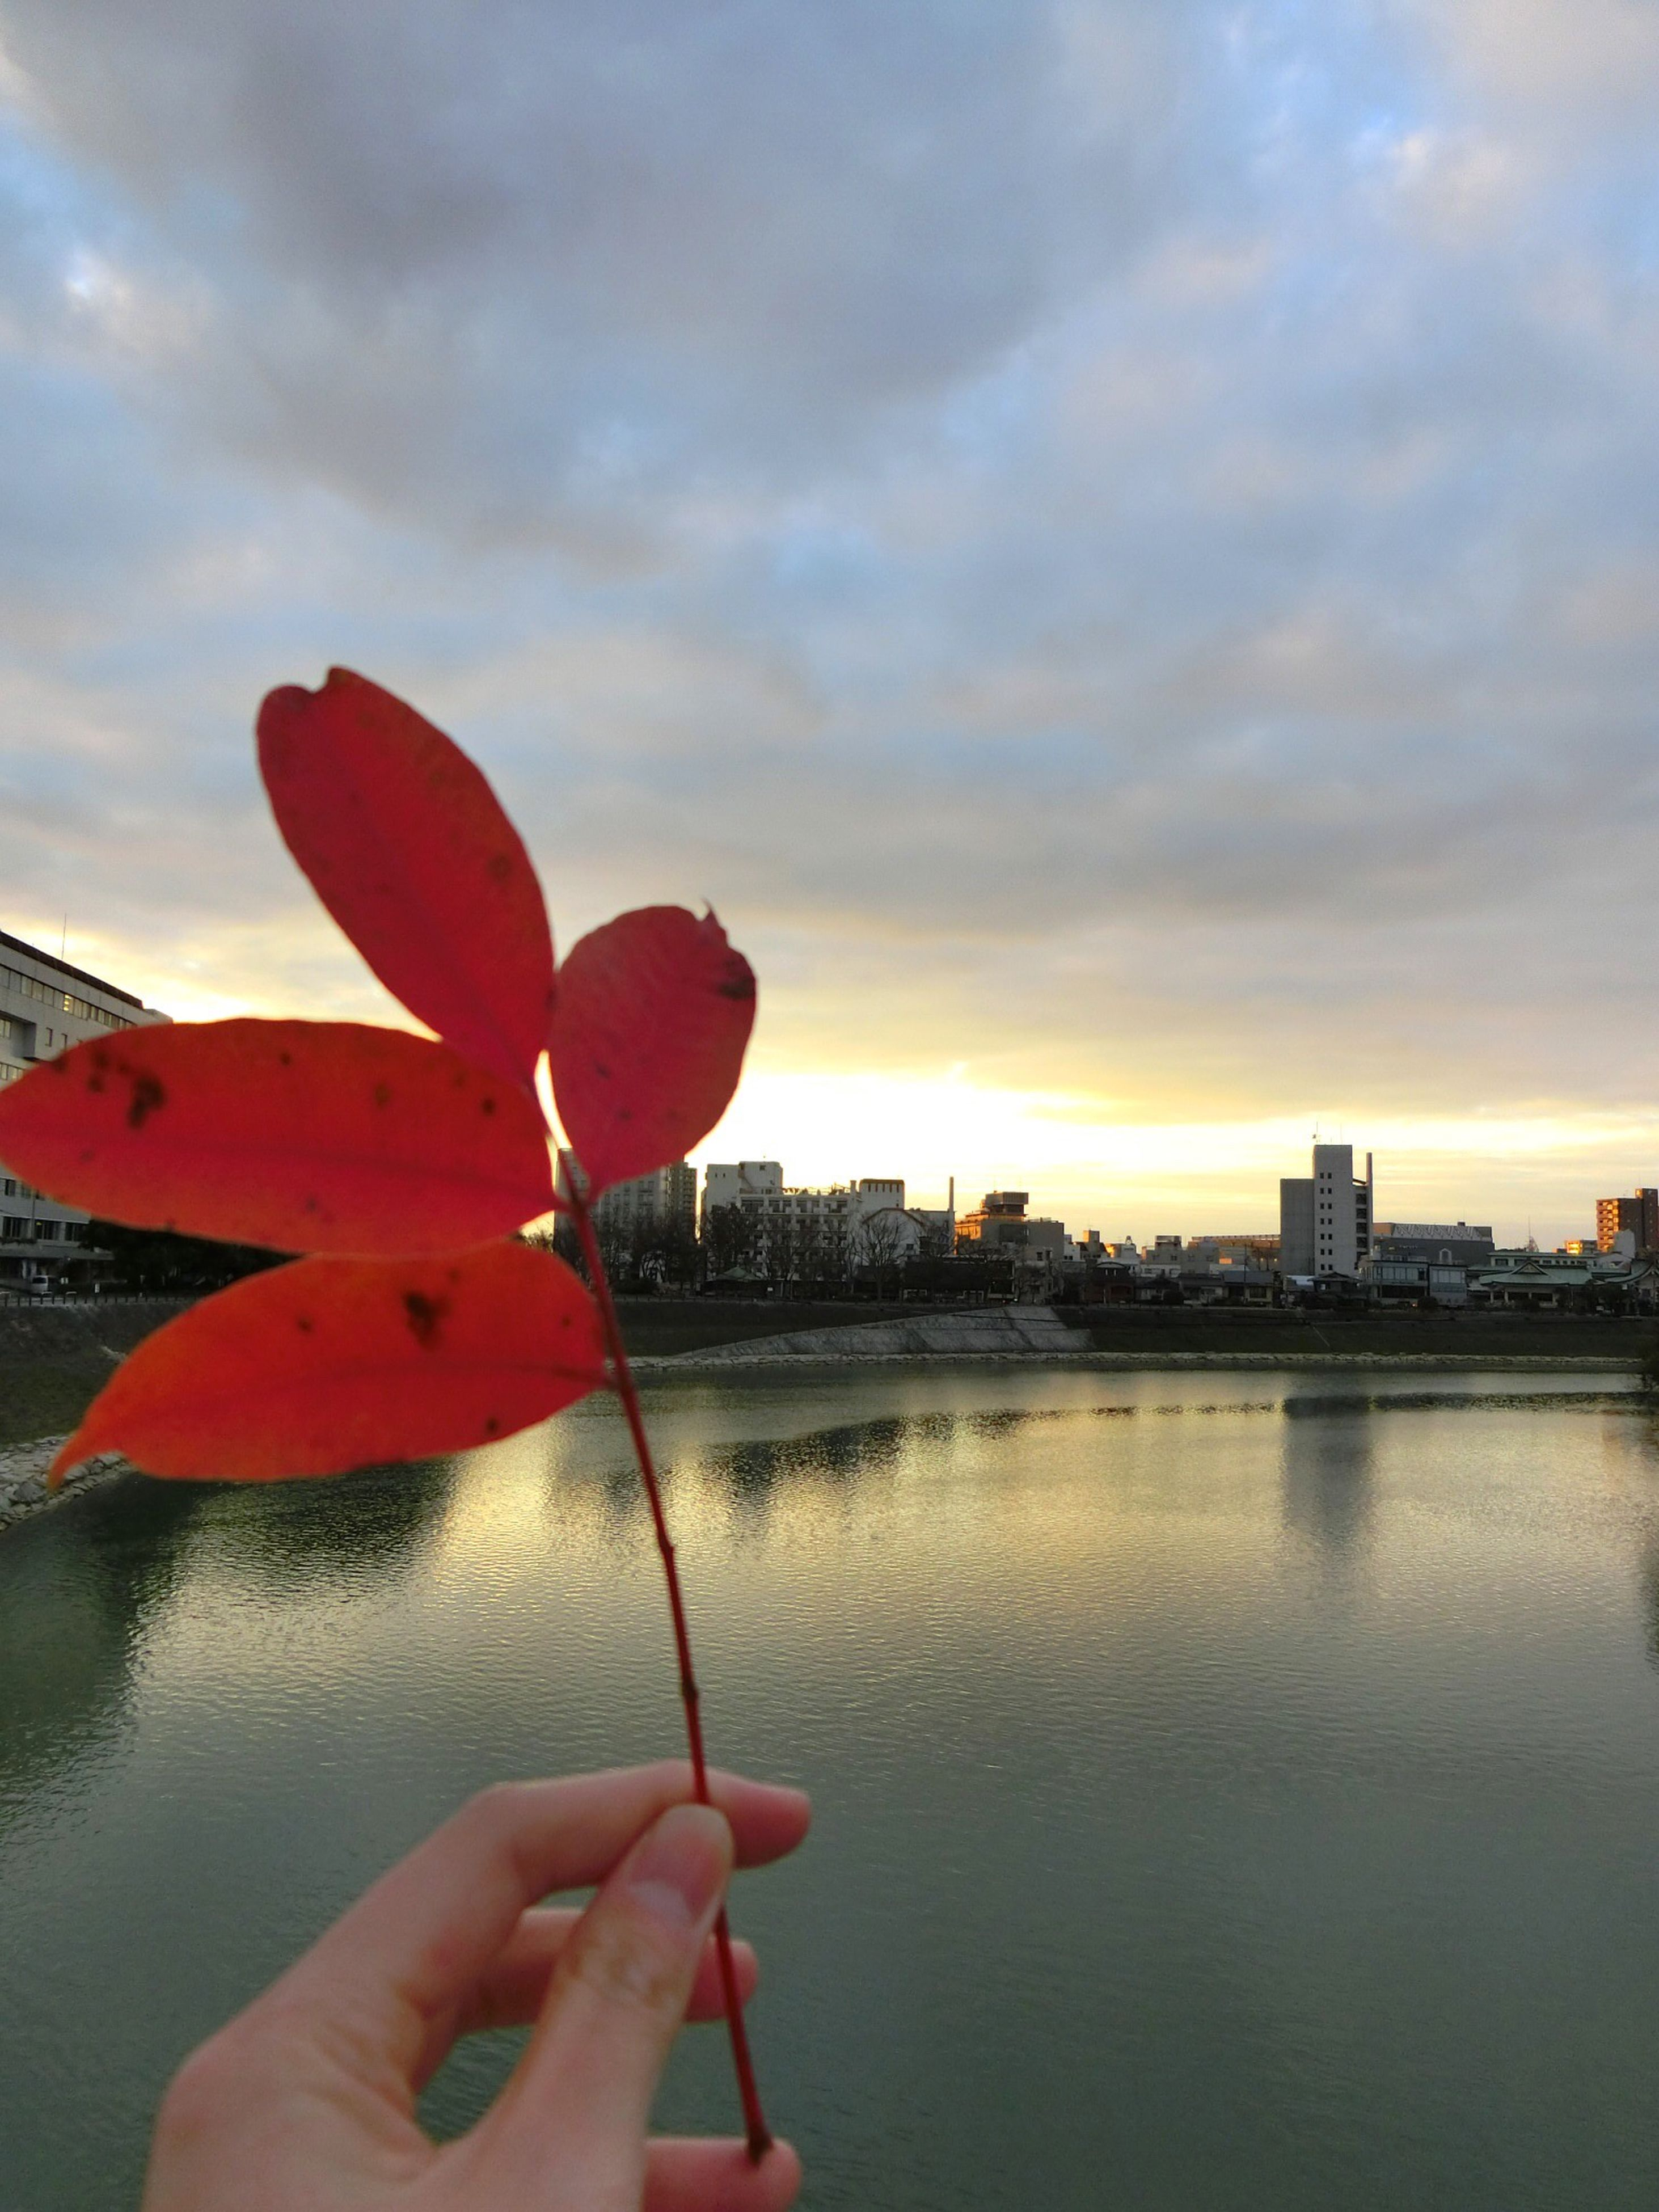 person, water, sky, holding, red, part of, cropped, cloud - sky, orange color, beauty in nature, nature, flower, freshness, cloud, focus on foreground, personal perspective, human finger